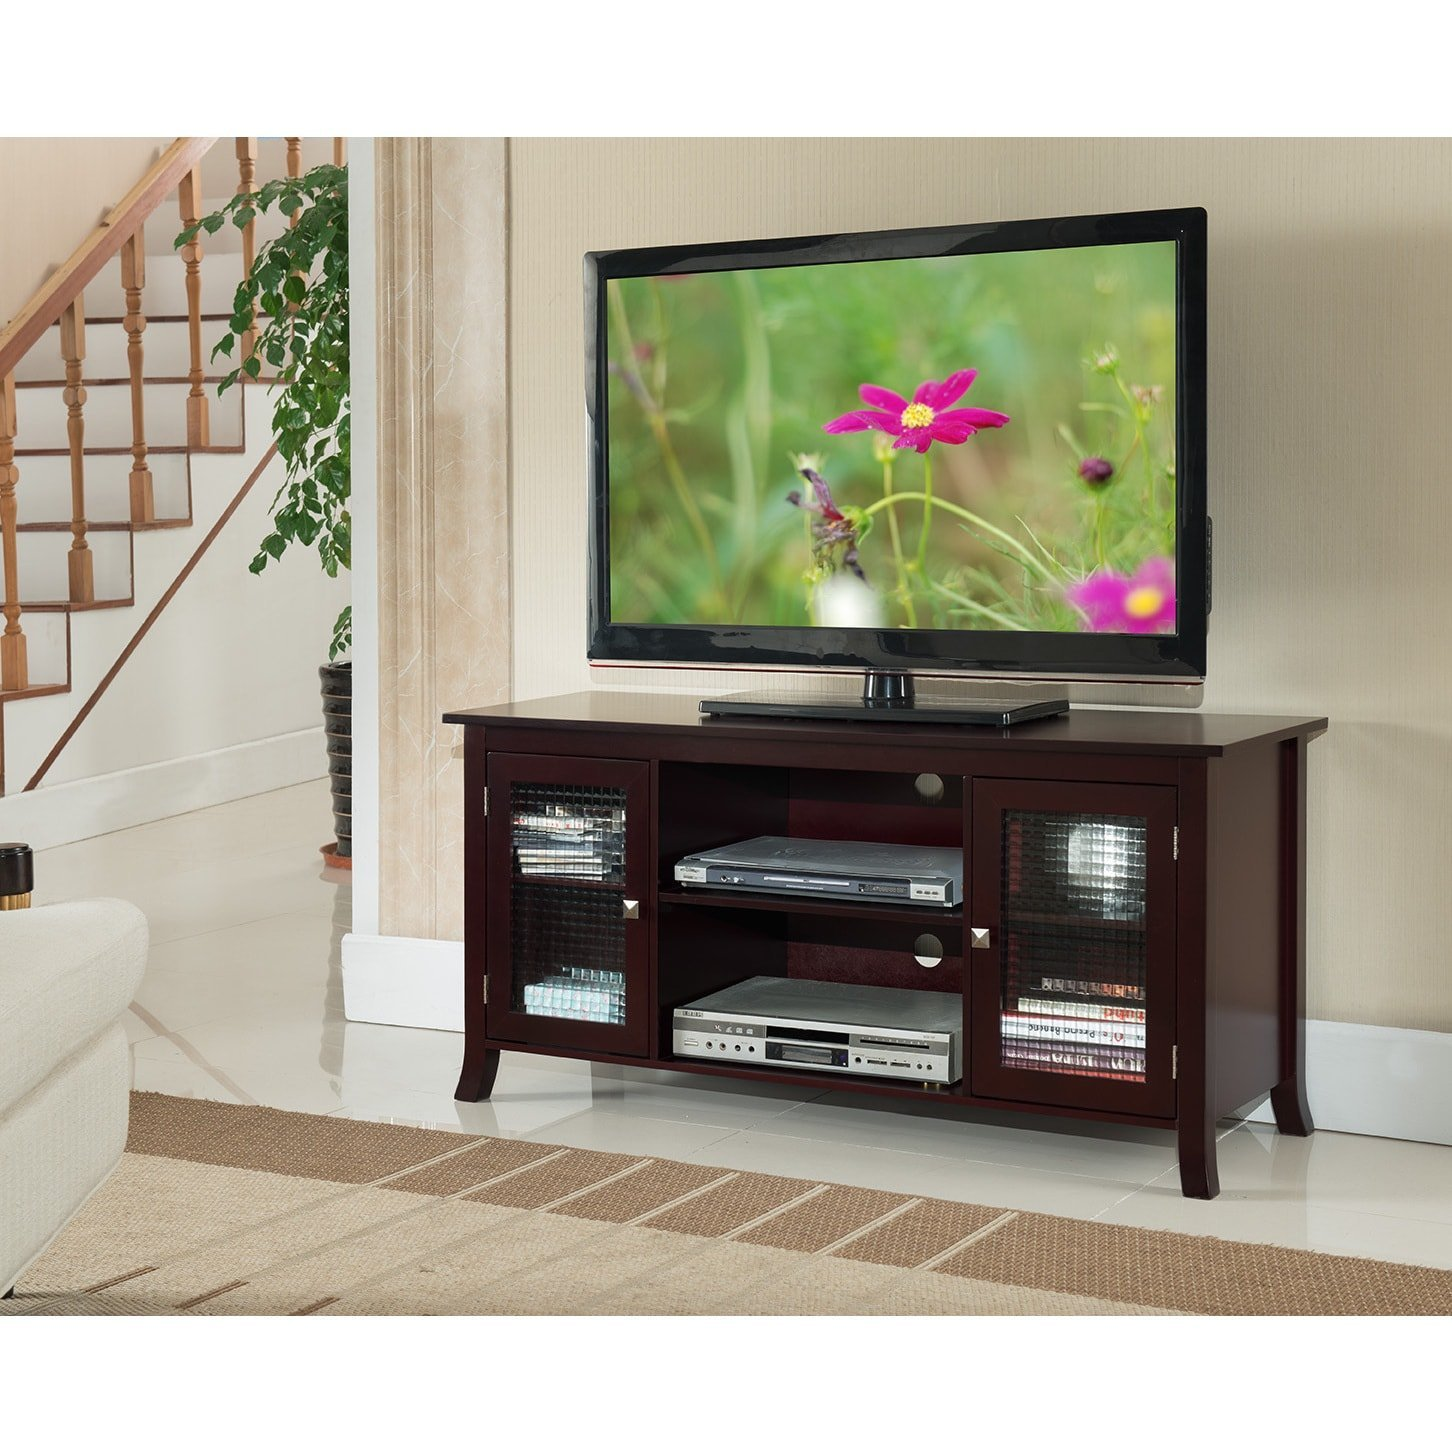 K and B Furniture Co Inc E1051 Cherry Wood/Veneer/Glass TV Stand